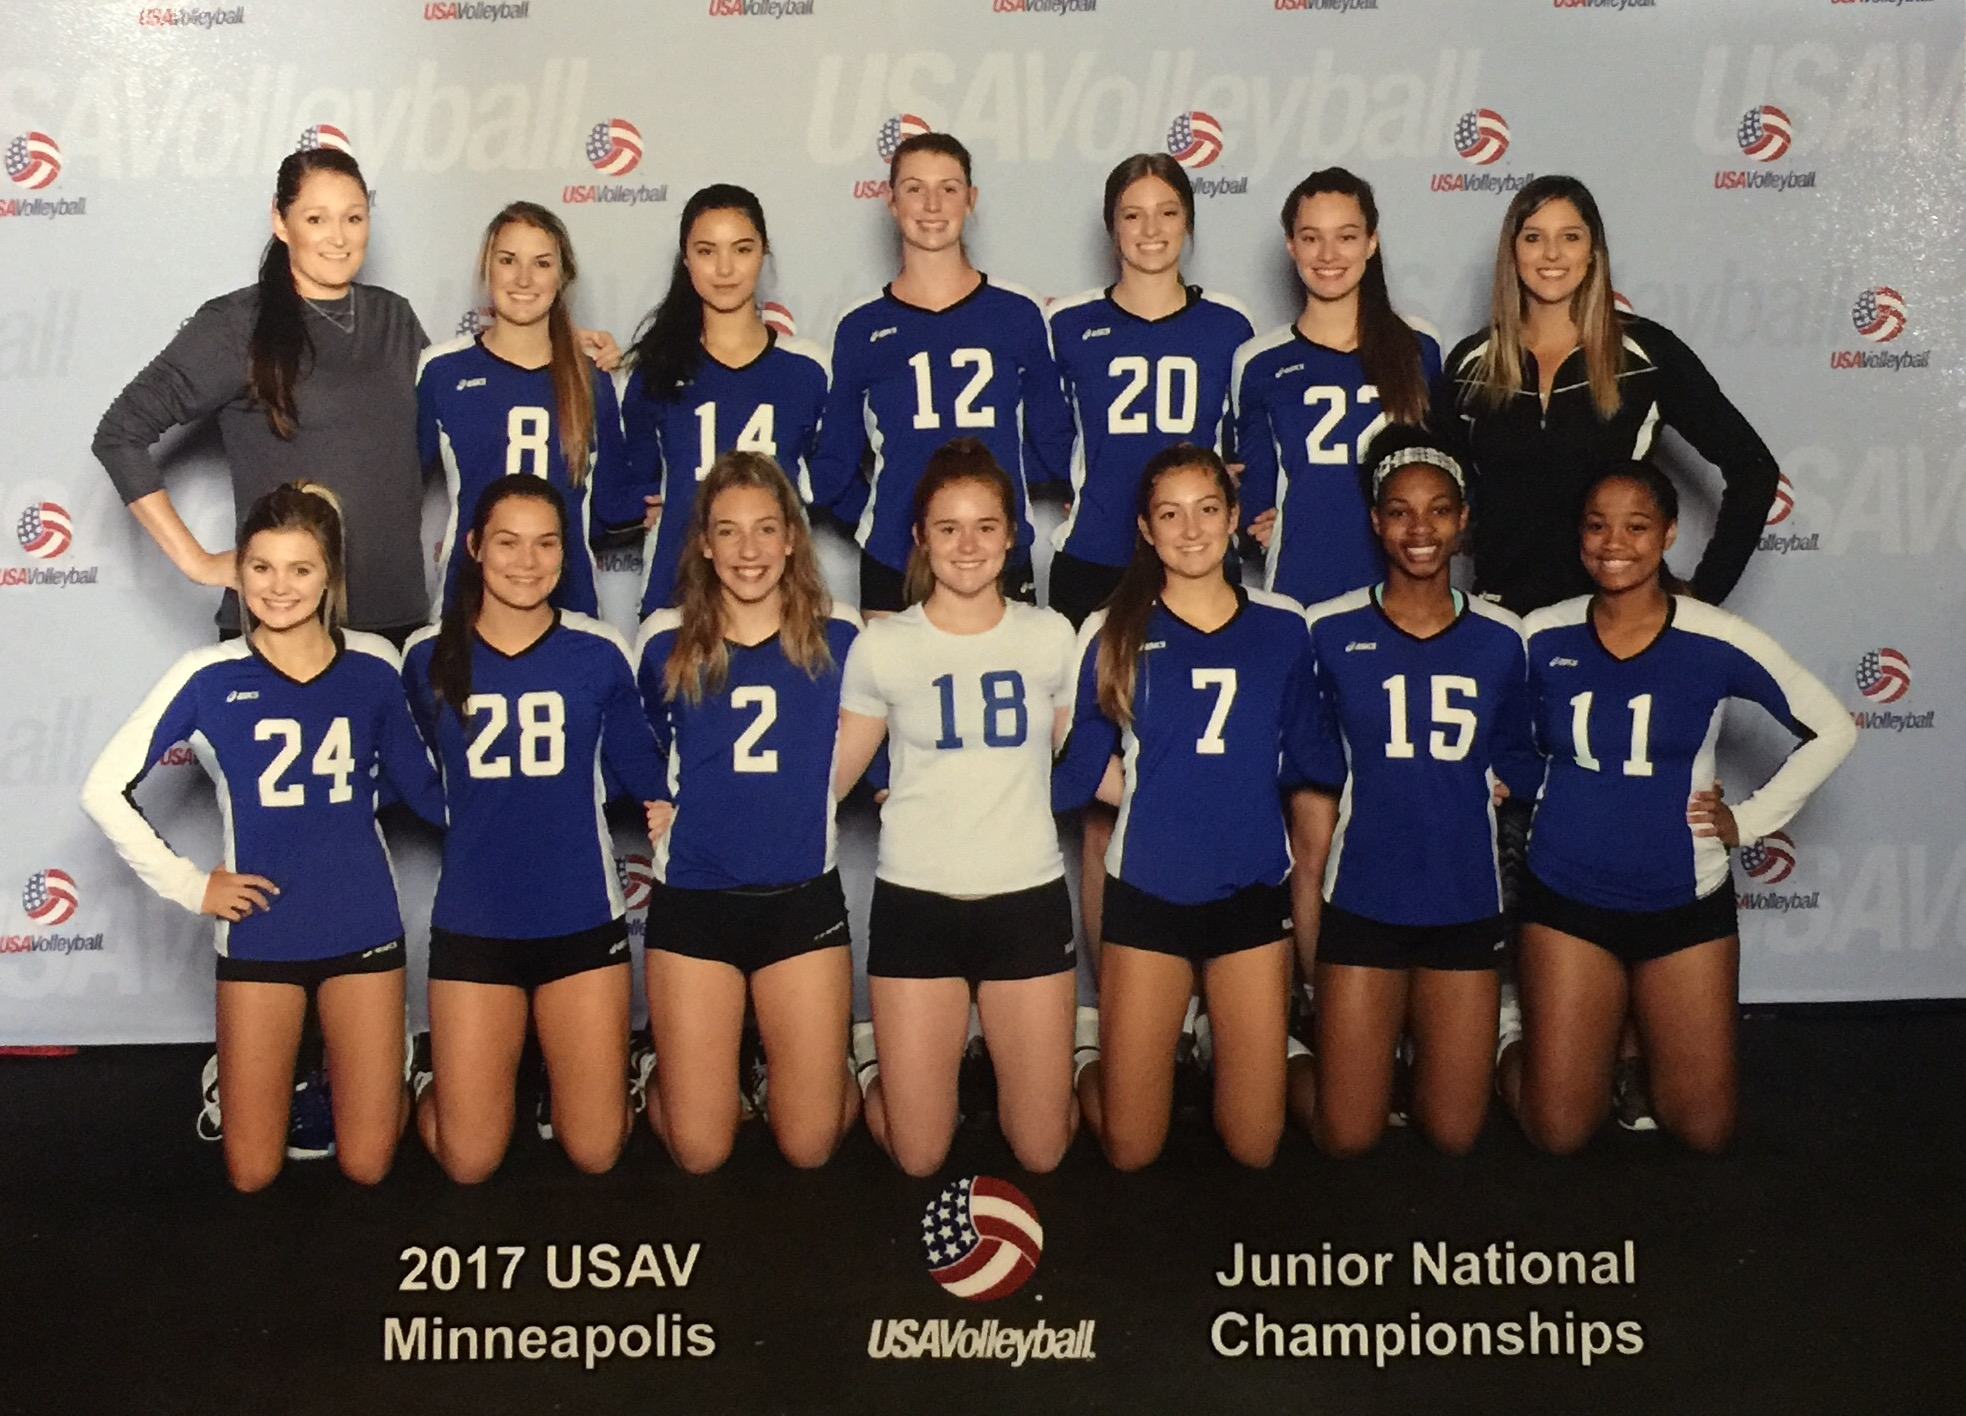 asics jr national volleyball championships 2017